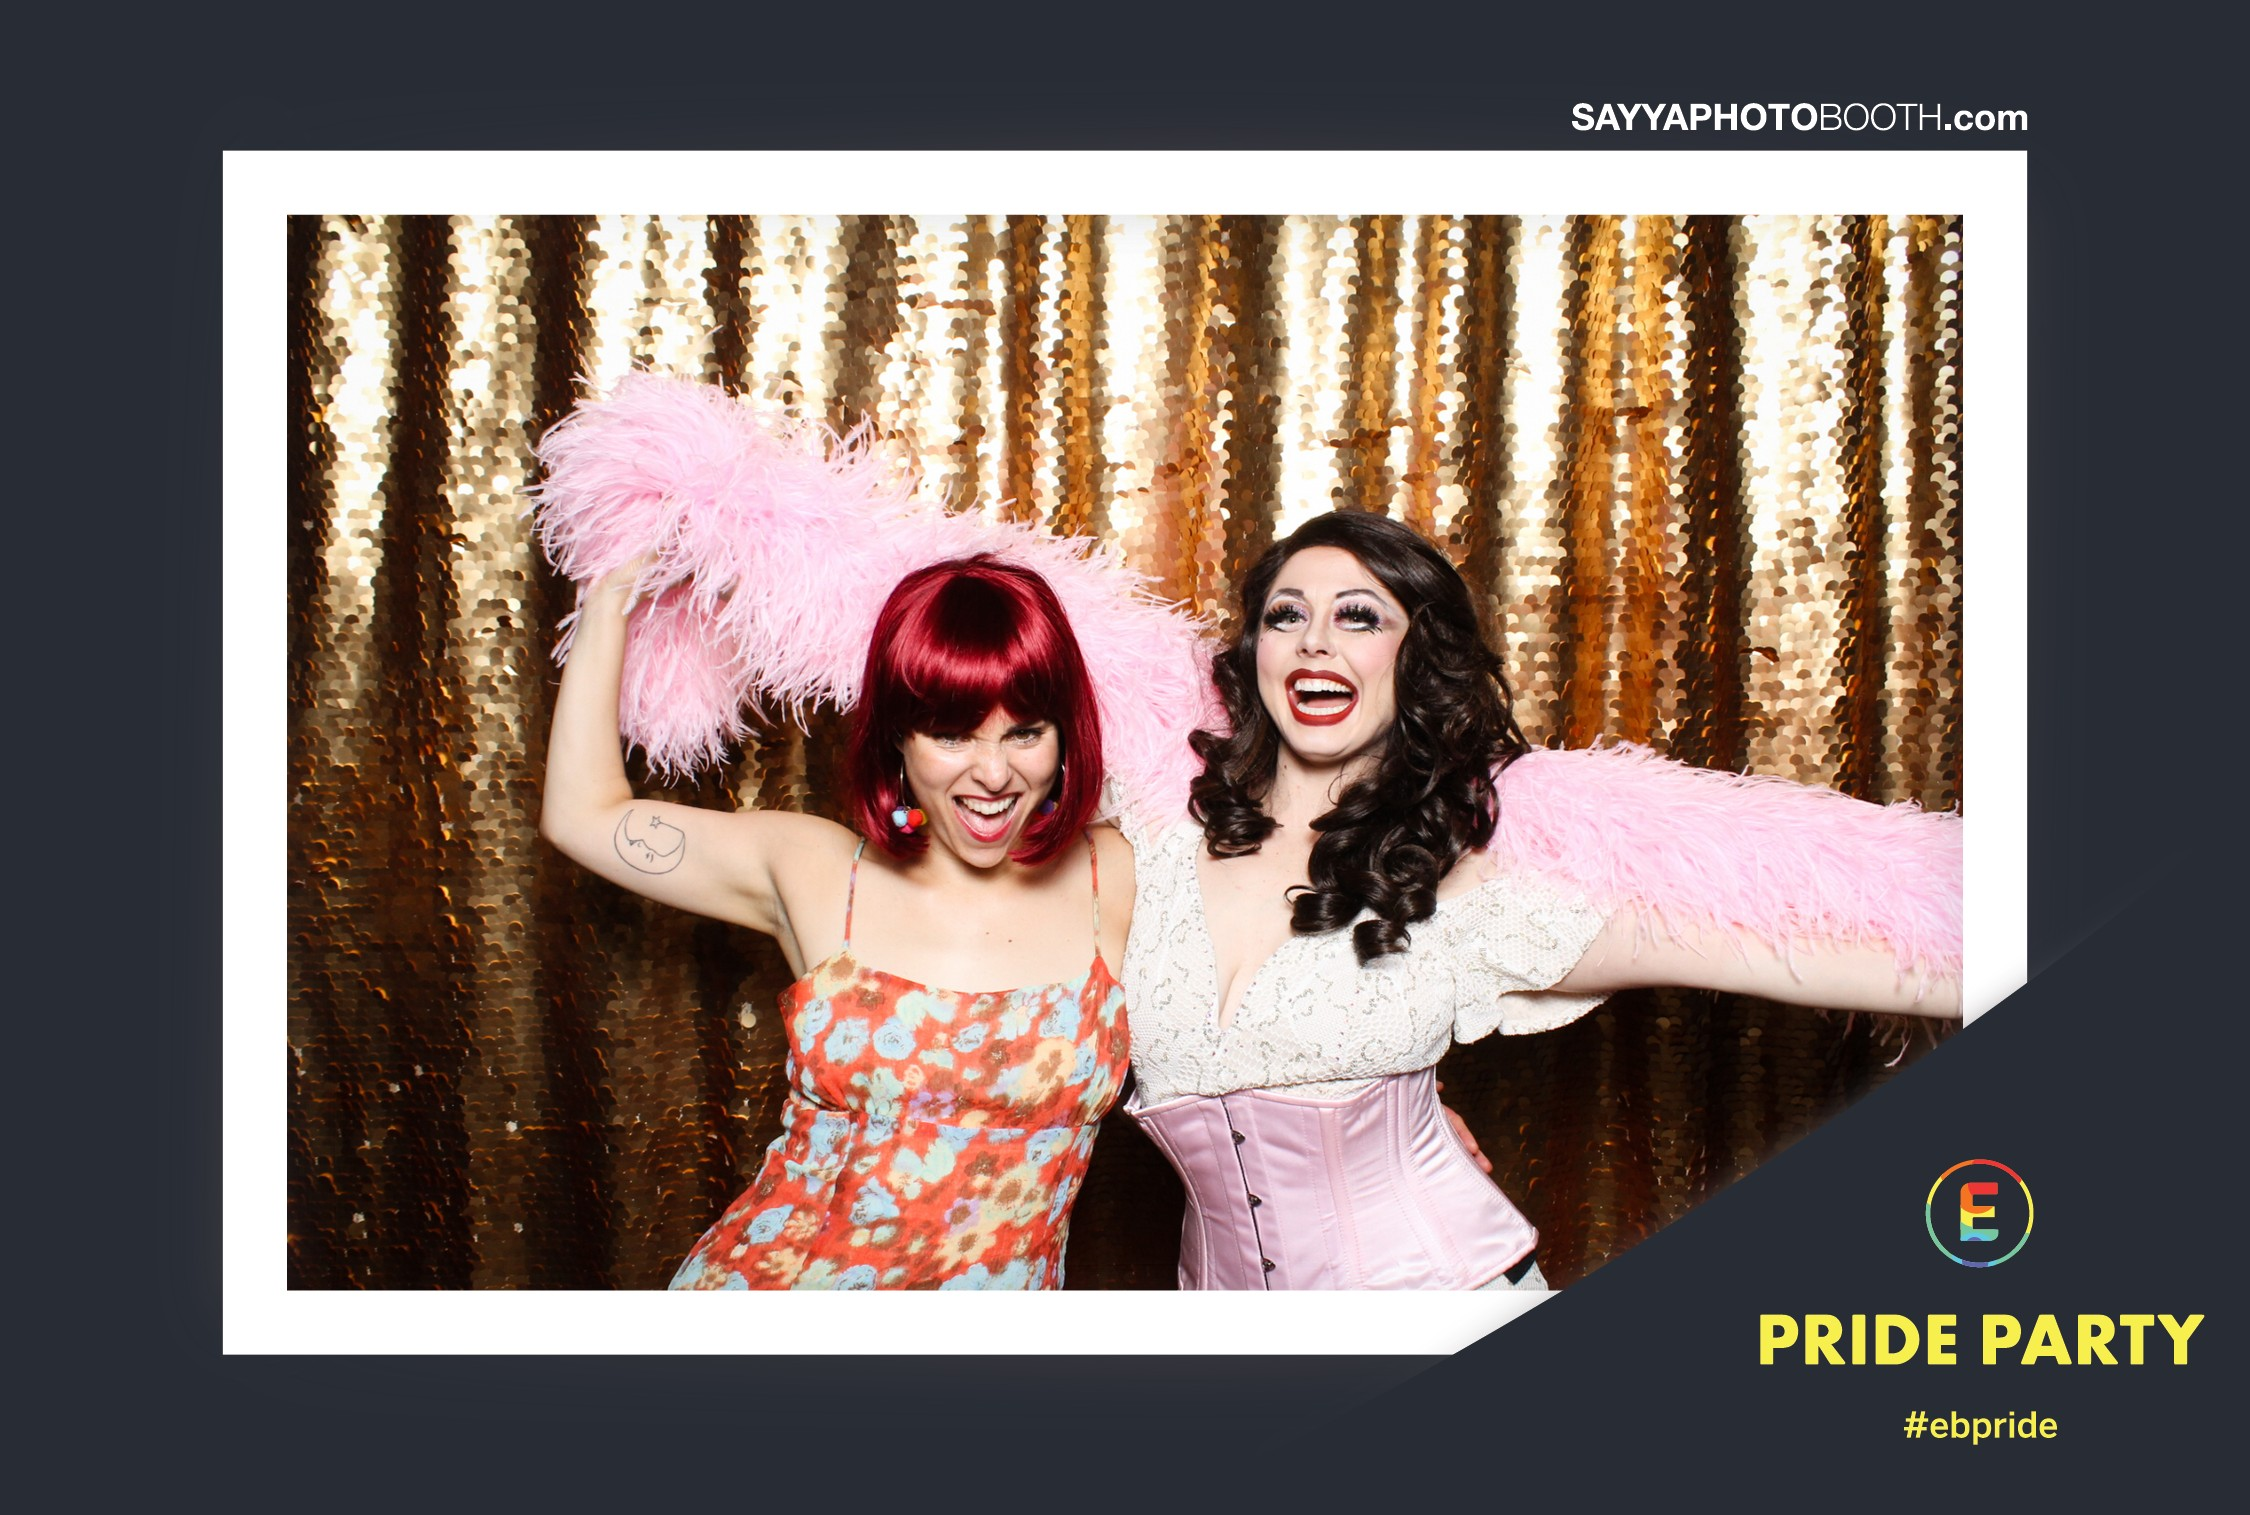 Pride Celebration at Eventbrite